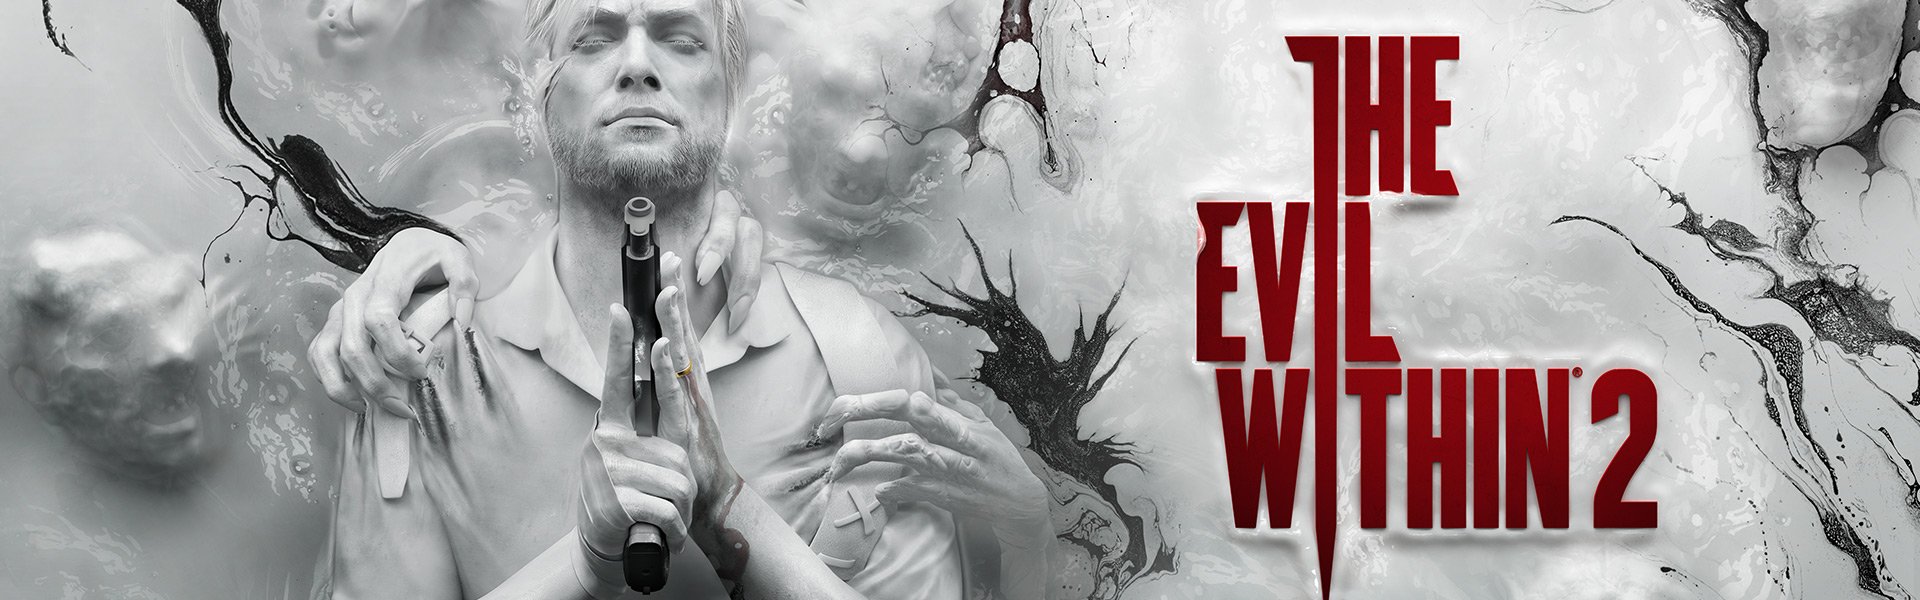 Evil Within 2 - Hero